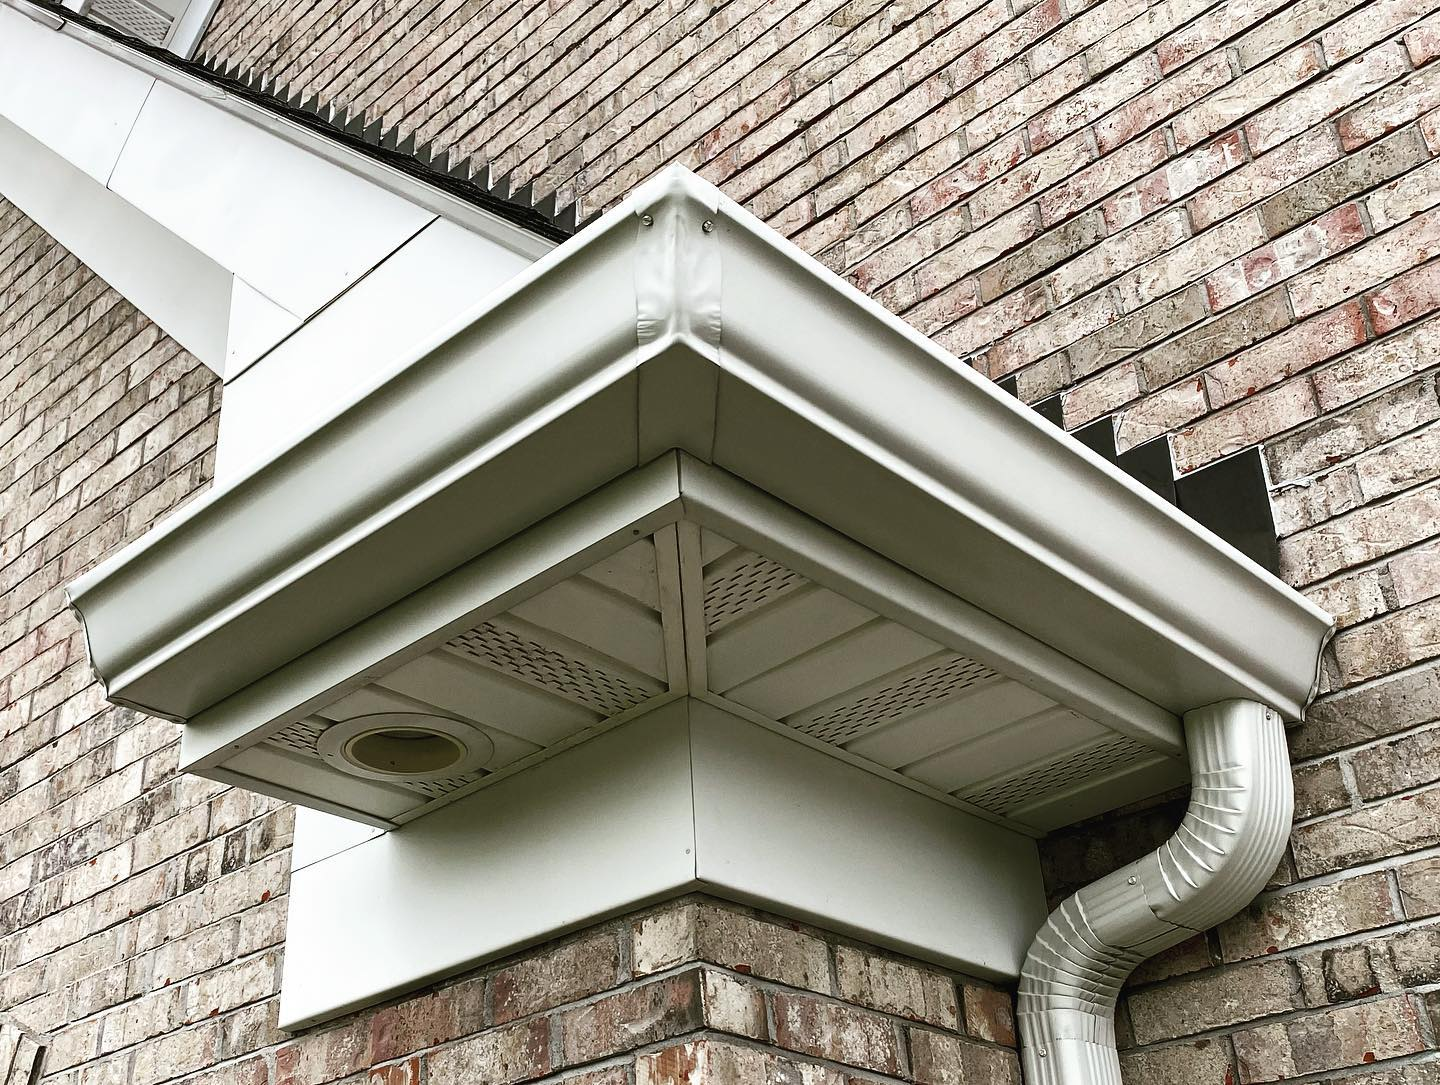 gutter cleaning service gutters cleaned ofallon o'fallon wentzville st peters st. peters mo missouri